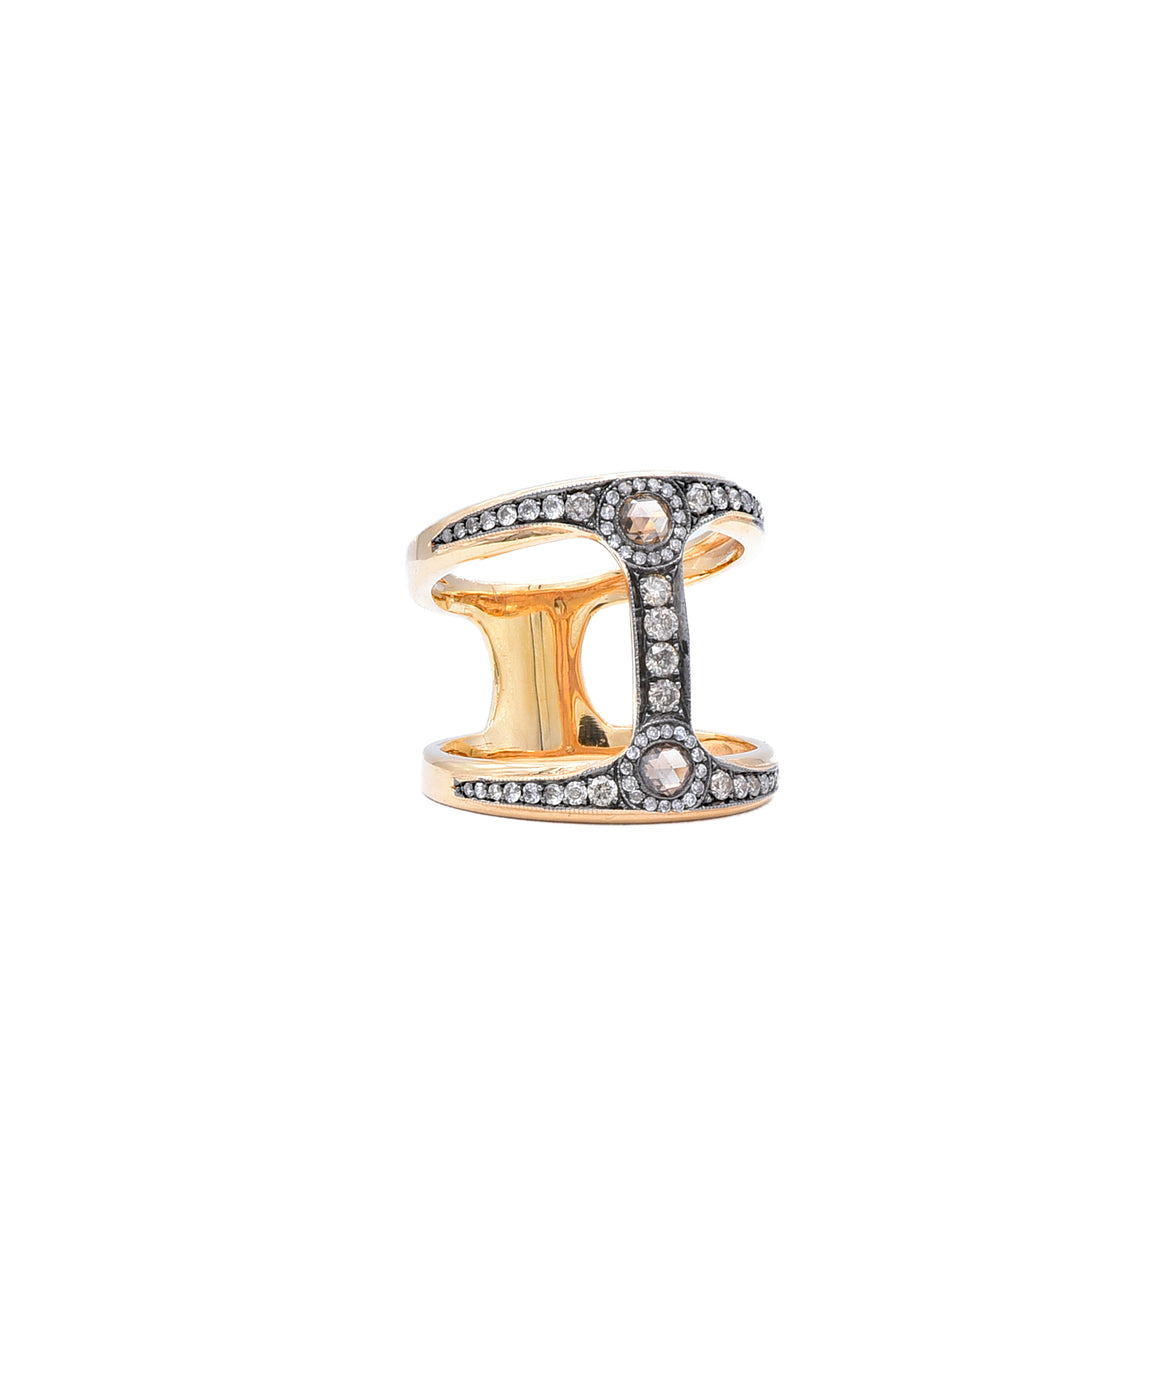 Cage ring with cognac diamonds